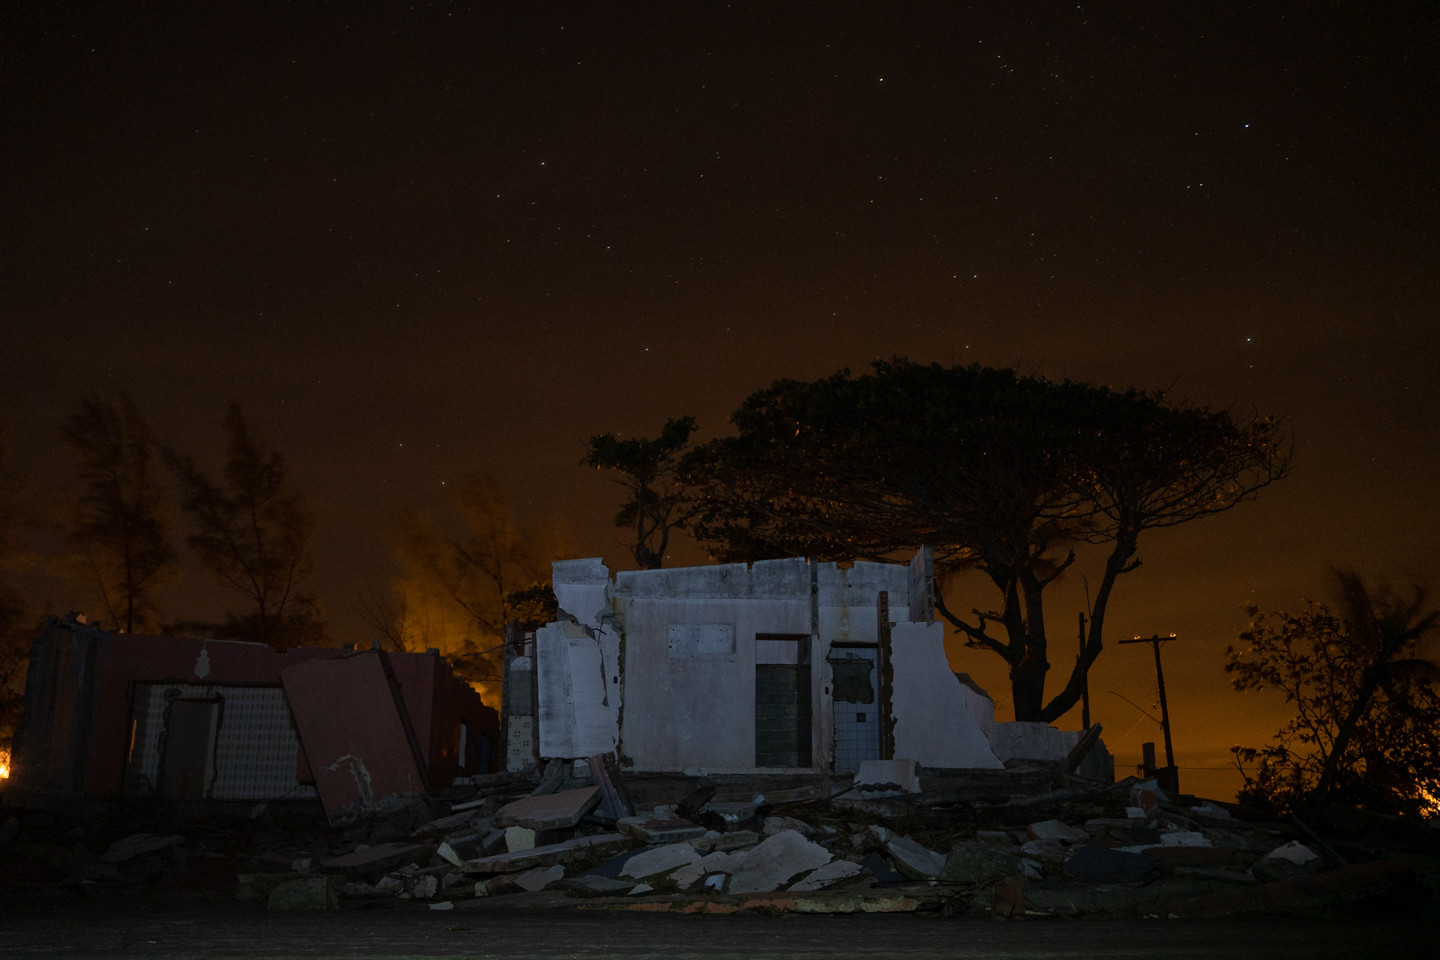 Destroyed houses are seen on East beach during a starry night in Ilha Comprida, Sao Paulo state, Brazil, February 19, 2020.